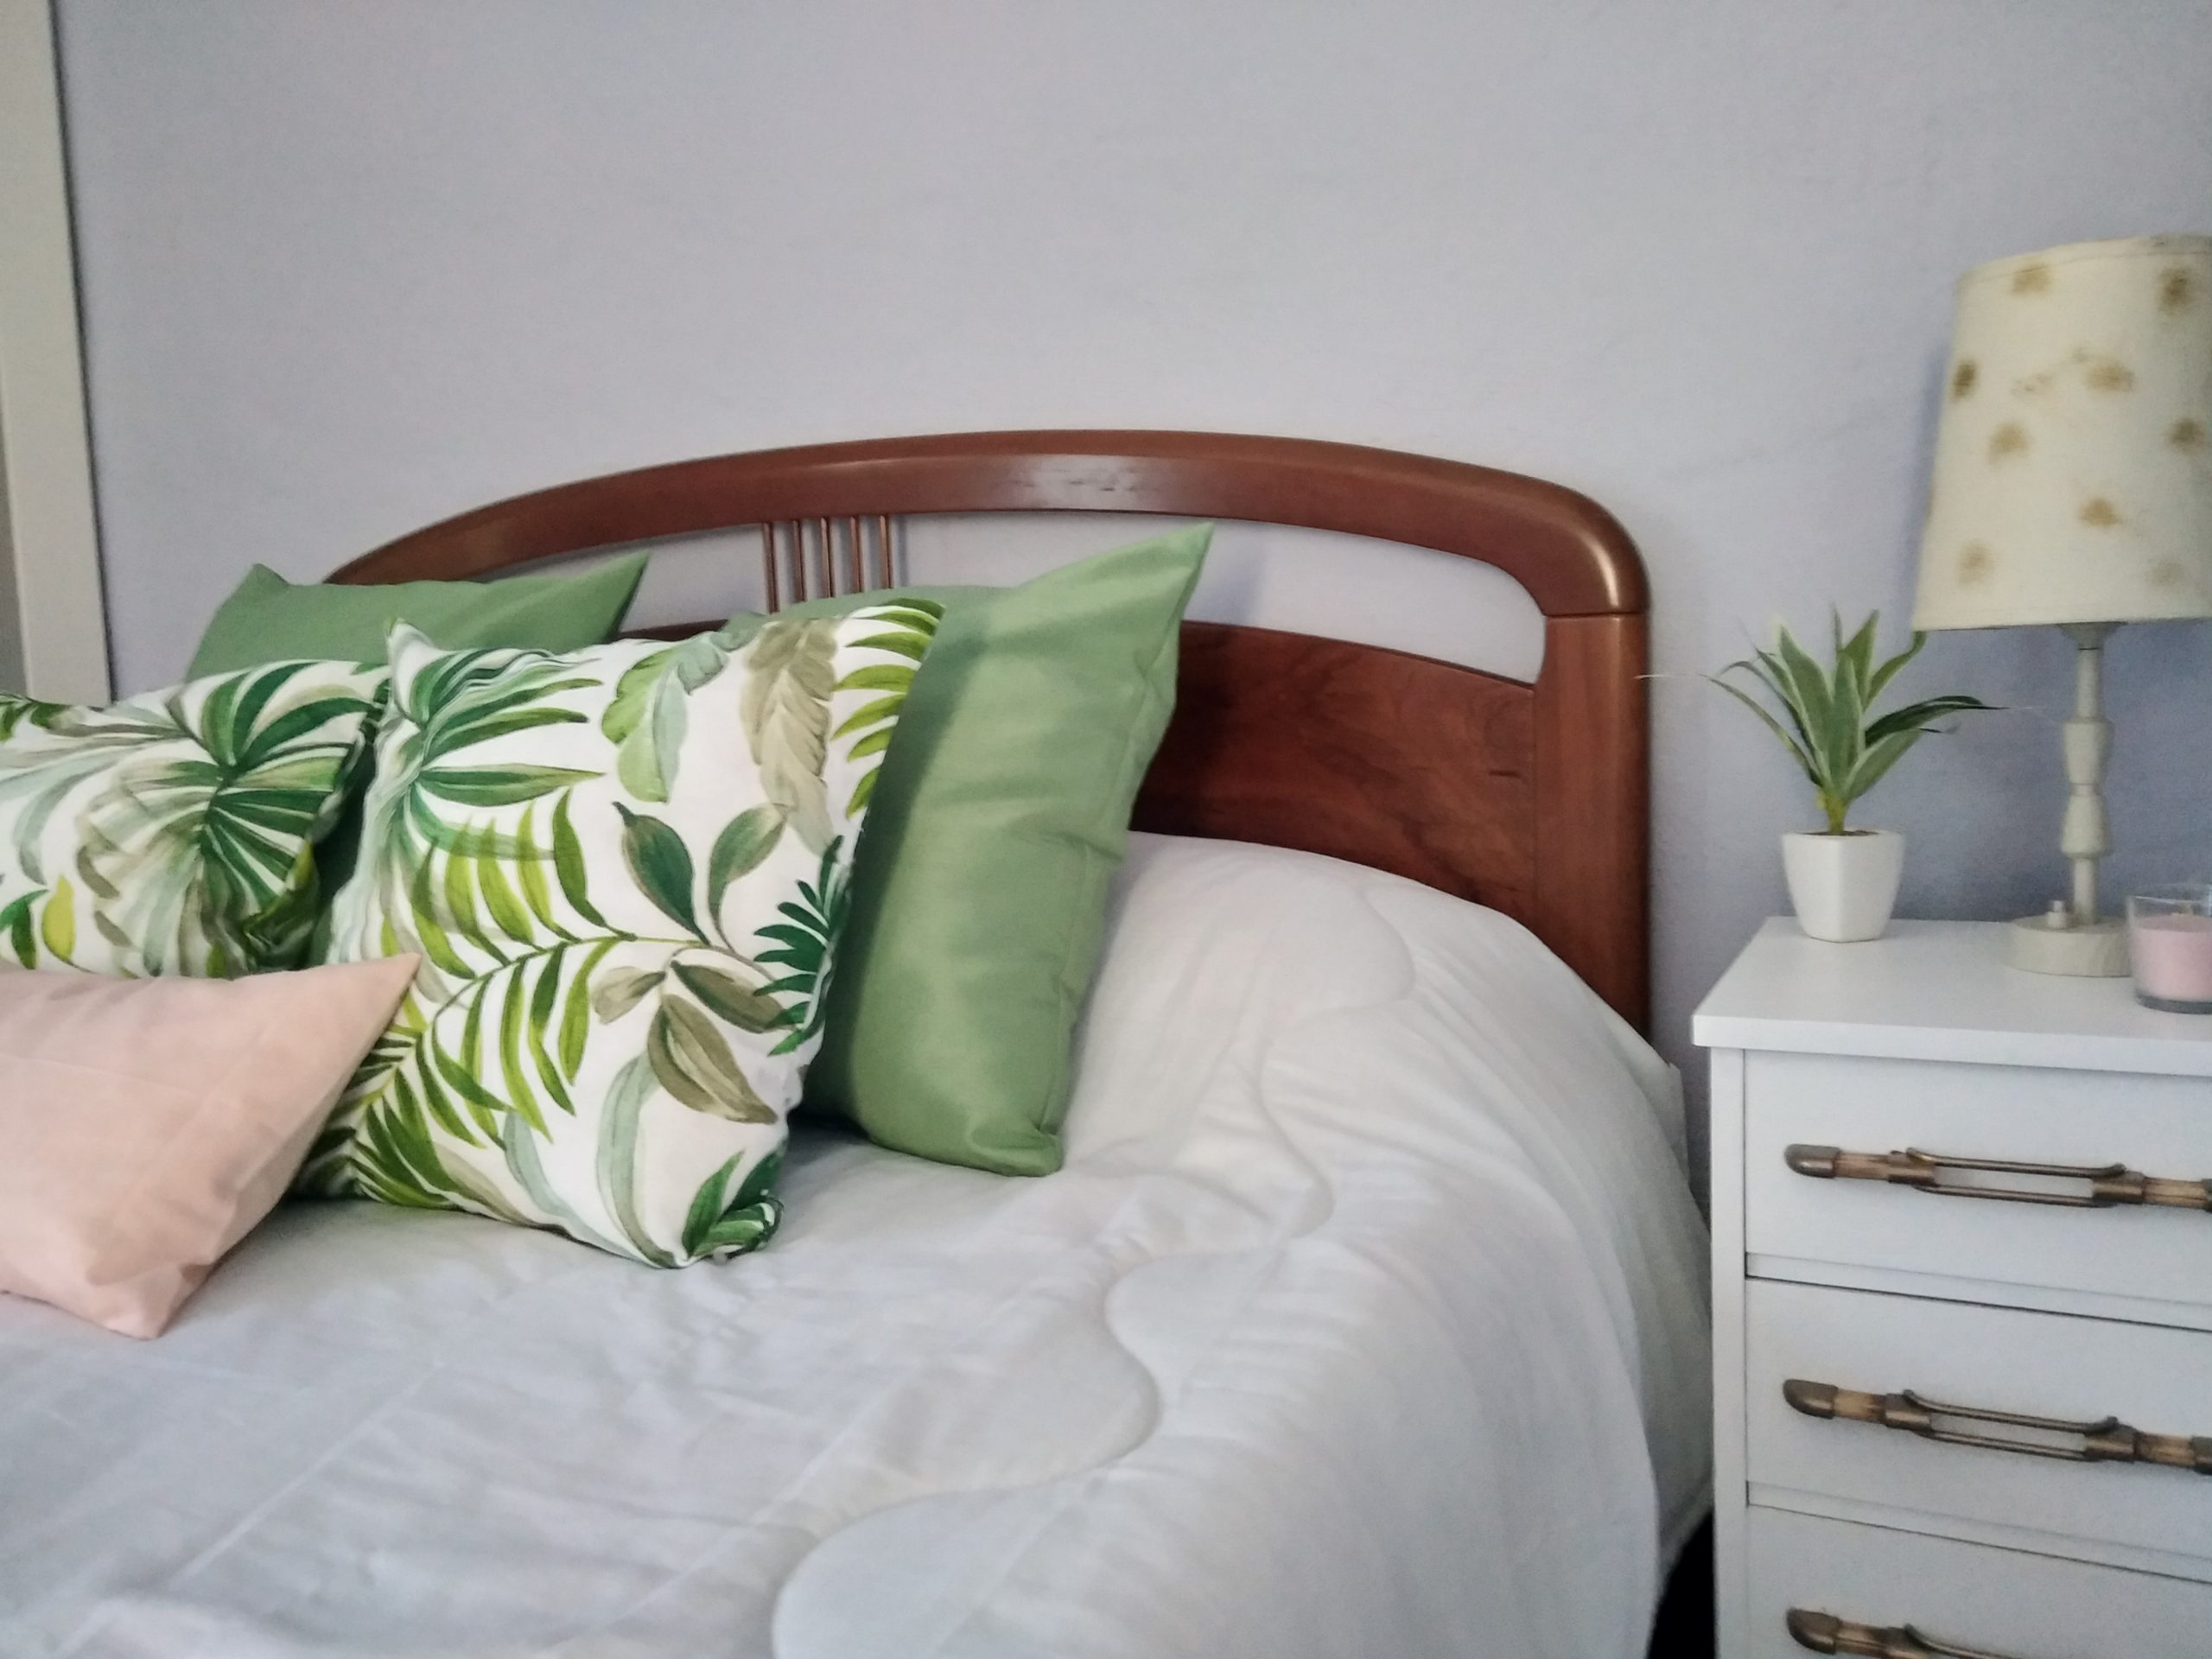 Dormitorio con Home Staging en Burgos